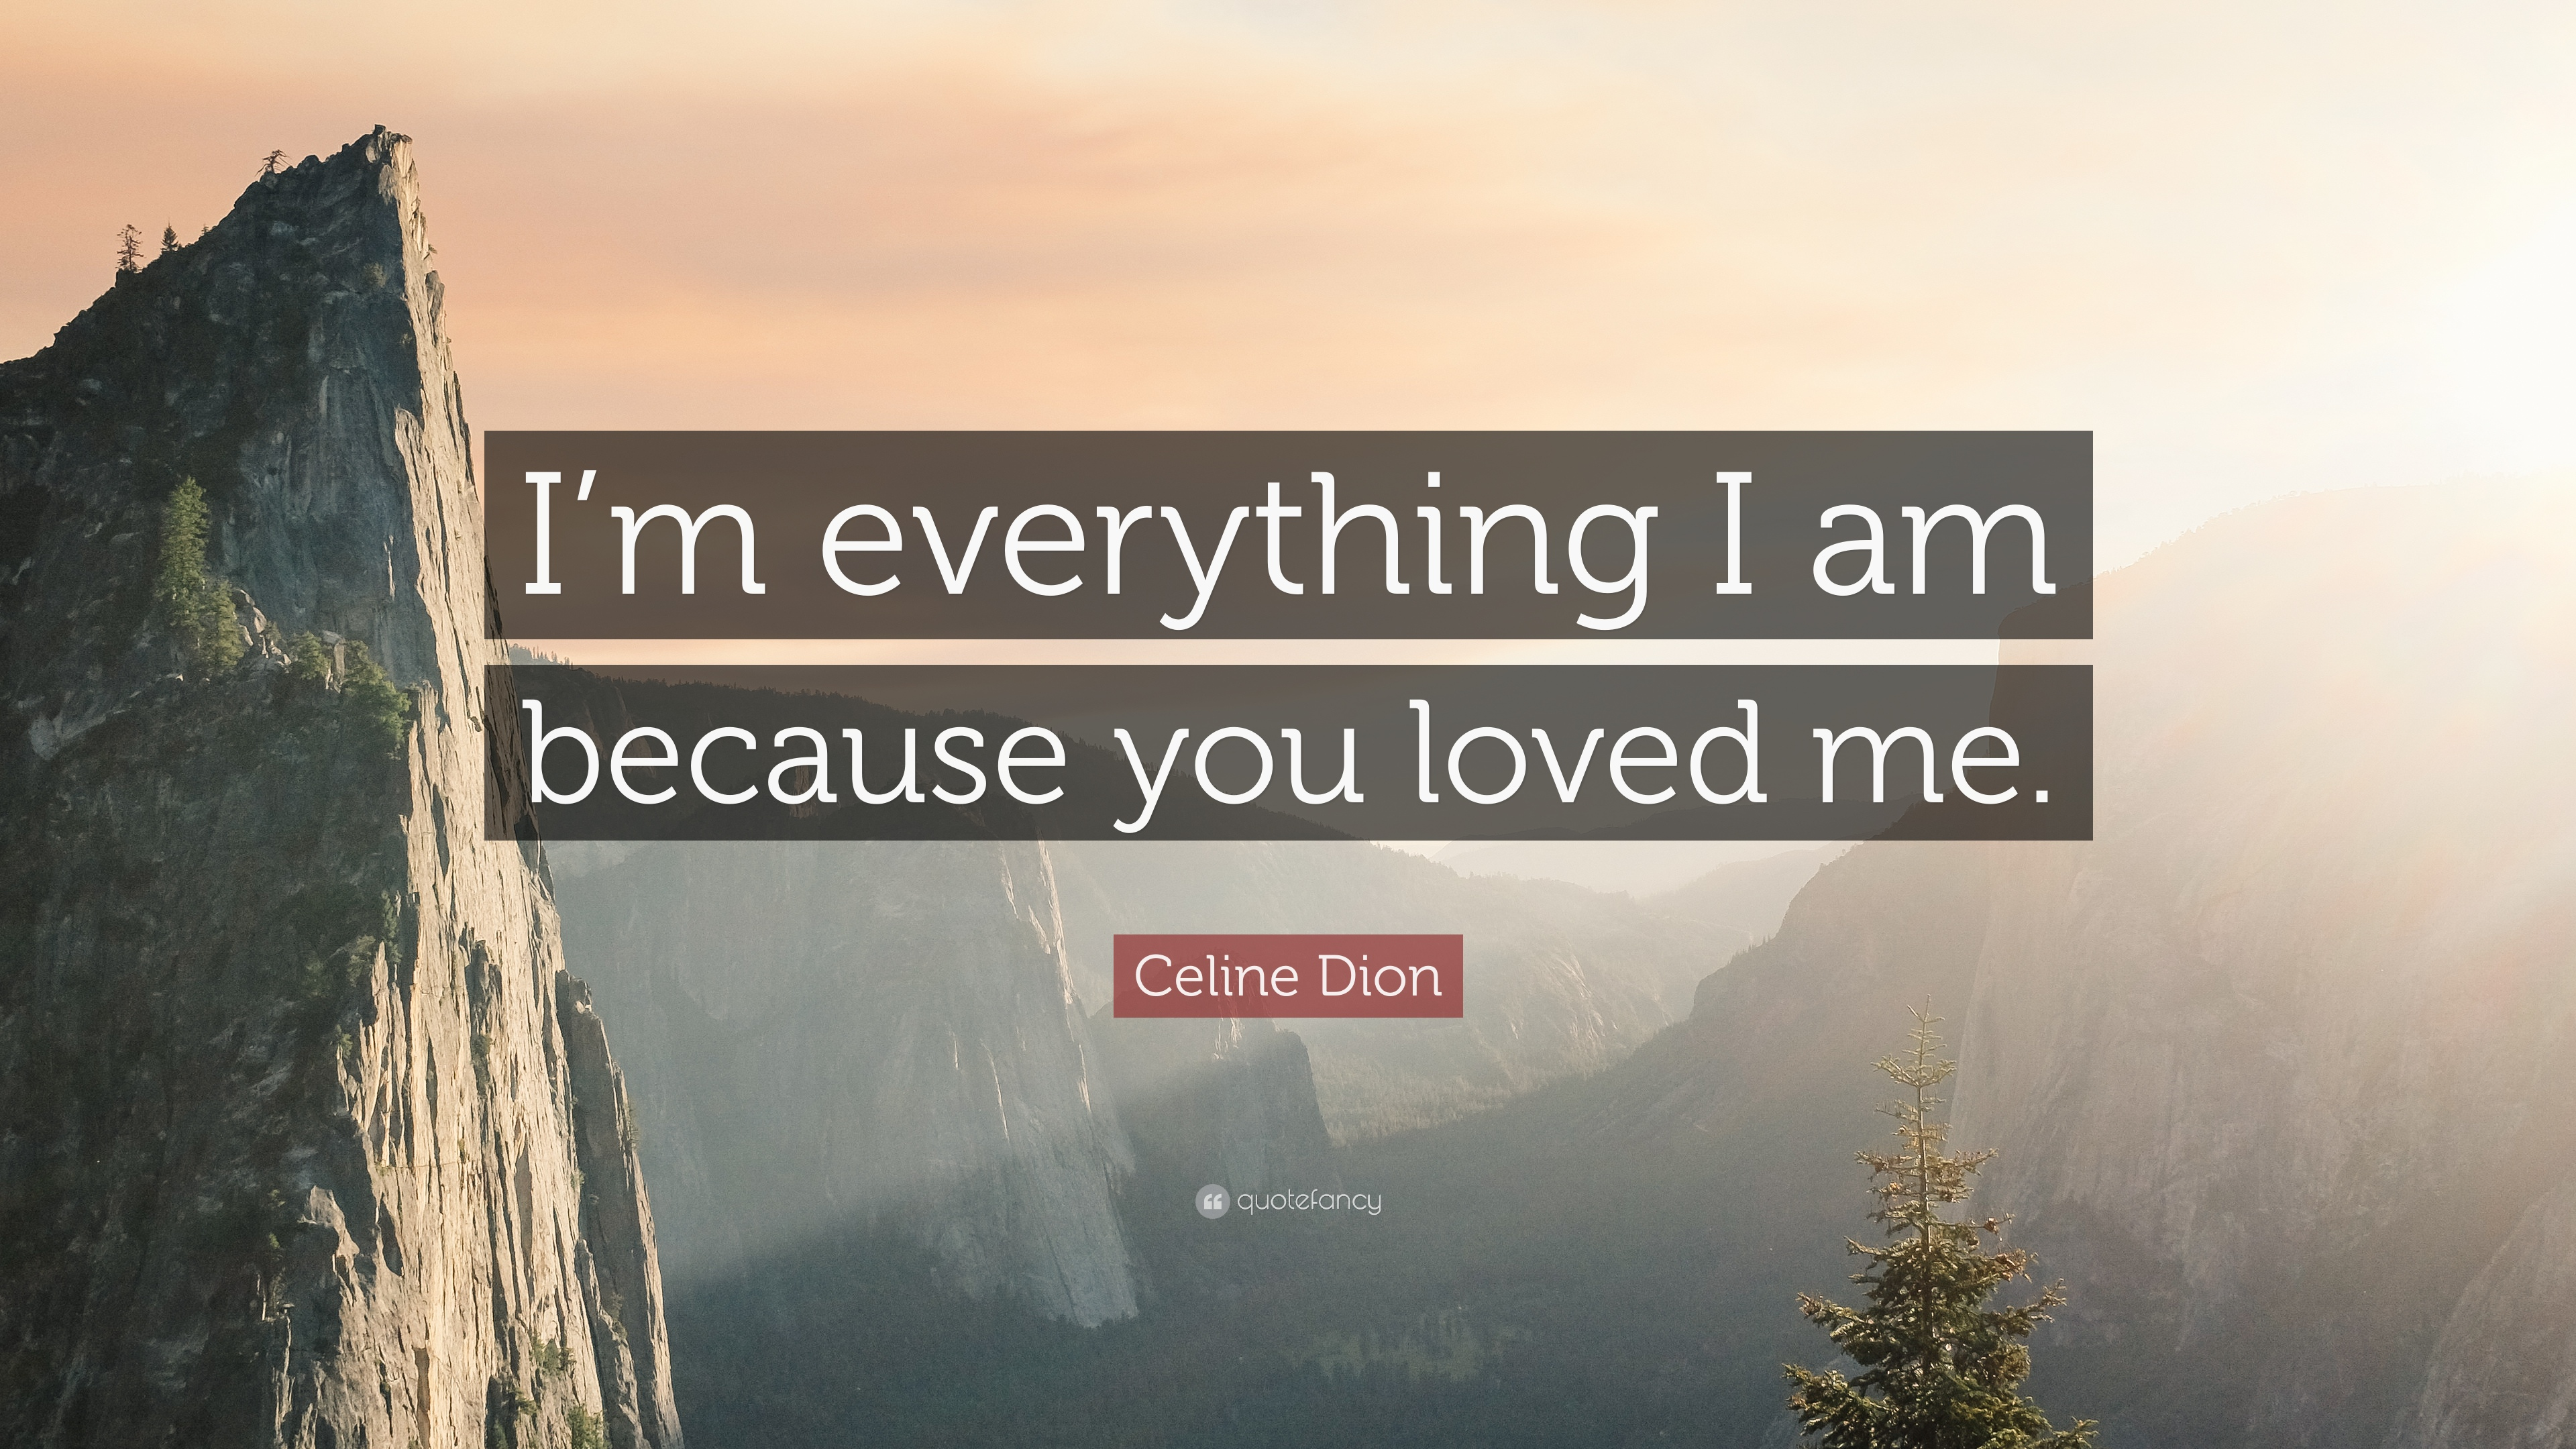 Celine Dion Quotes (73 wallpapers) - Quotefancy